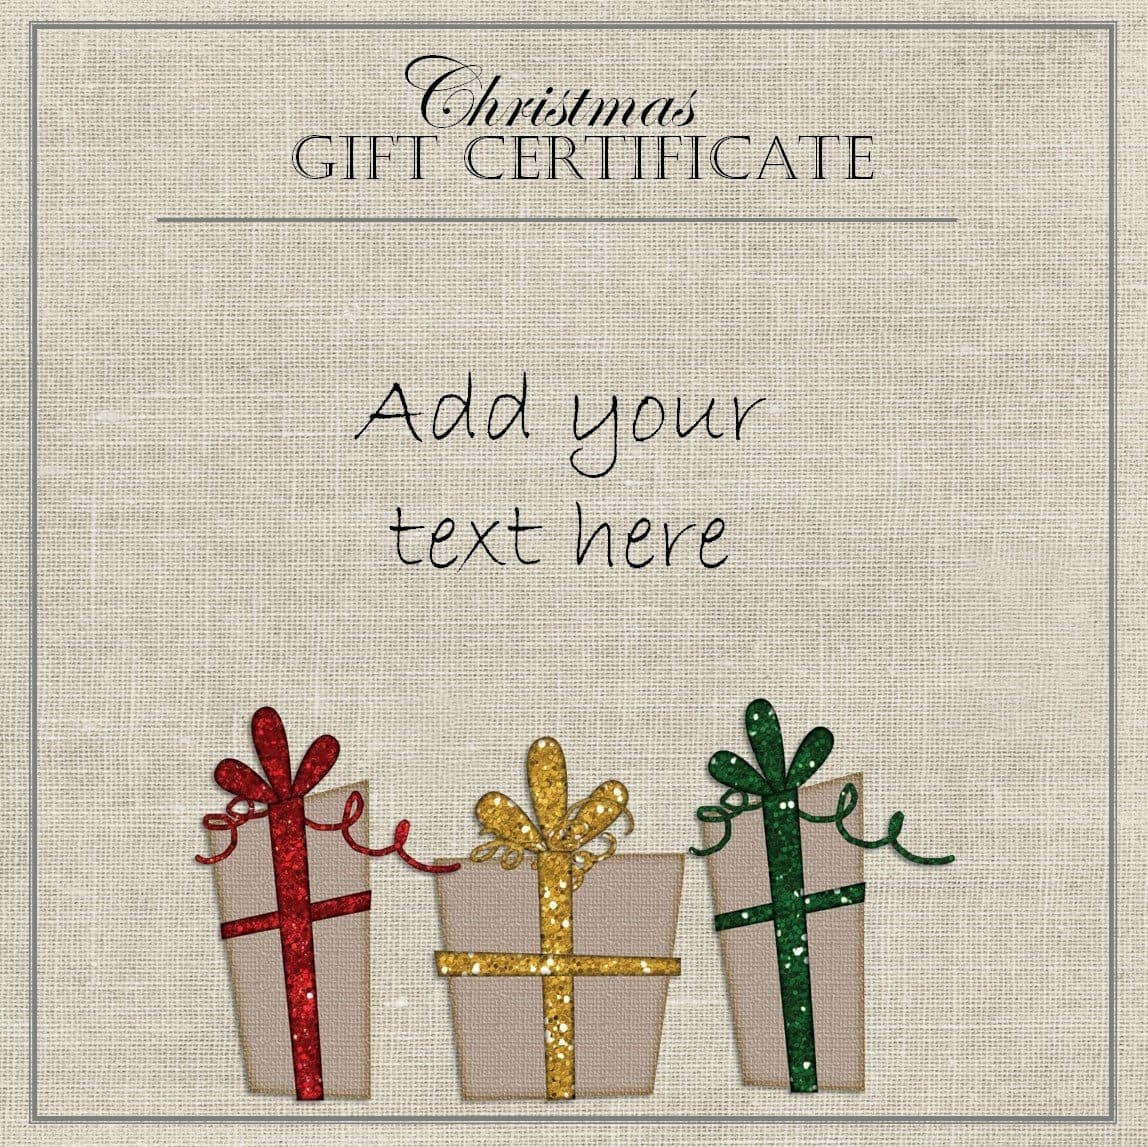 Free Christmas Gift Certificate Template   Customize Online & Download - Free Printable Xmas Gift Certificates